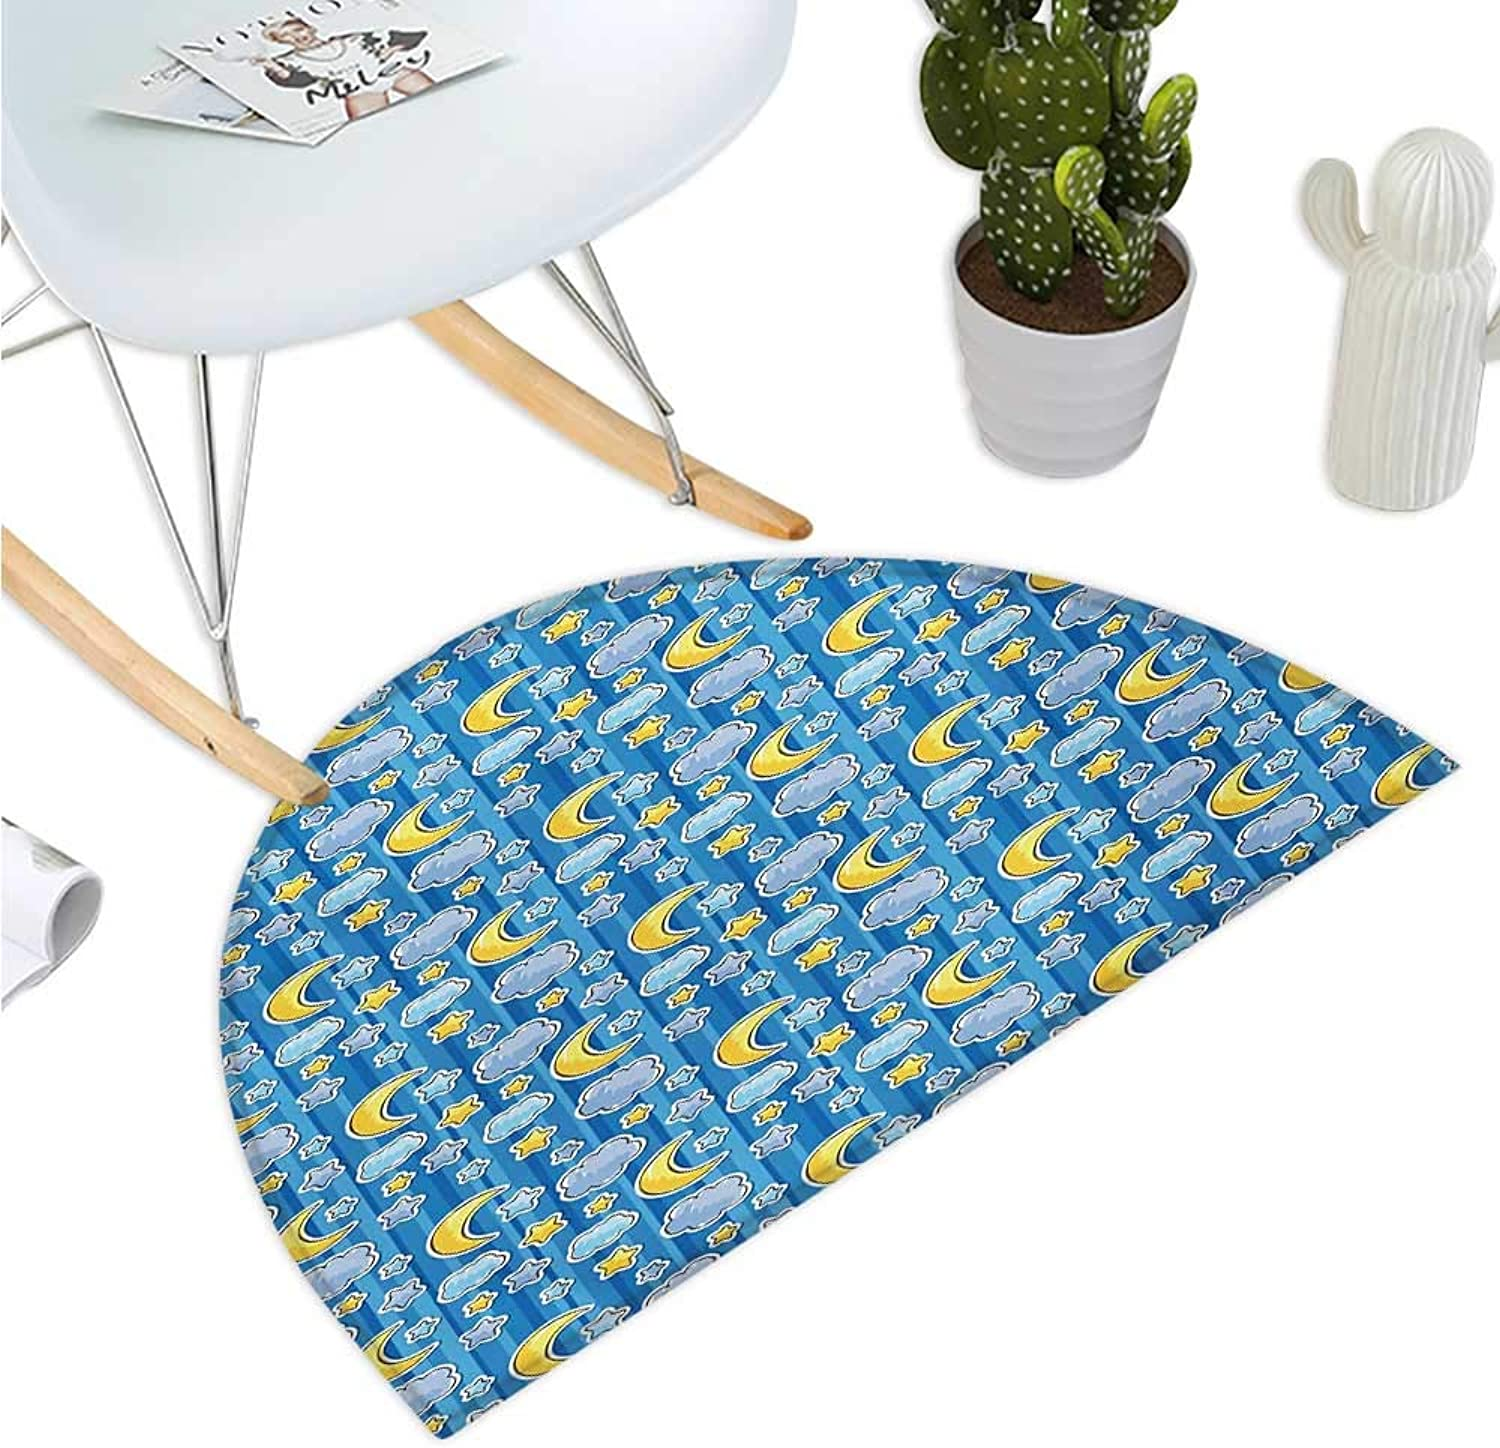 Baby Semicircular Cushion Abstract Skyline with Stars Clouds and Crescent Moon greenical Striped Backdrop Doodle Bathroom Mat H 35.4  xD 53.1  bluee Yellow